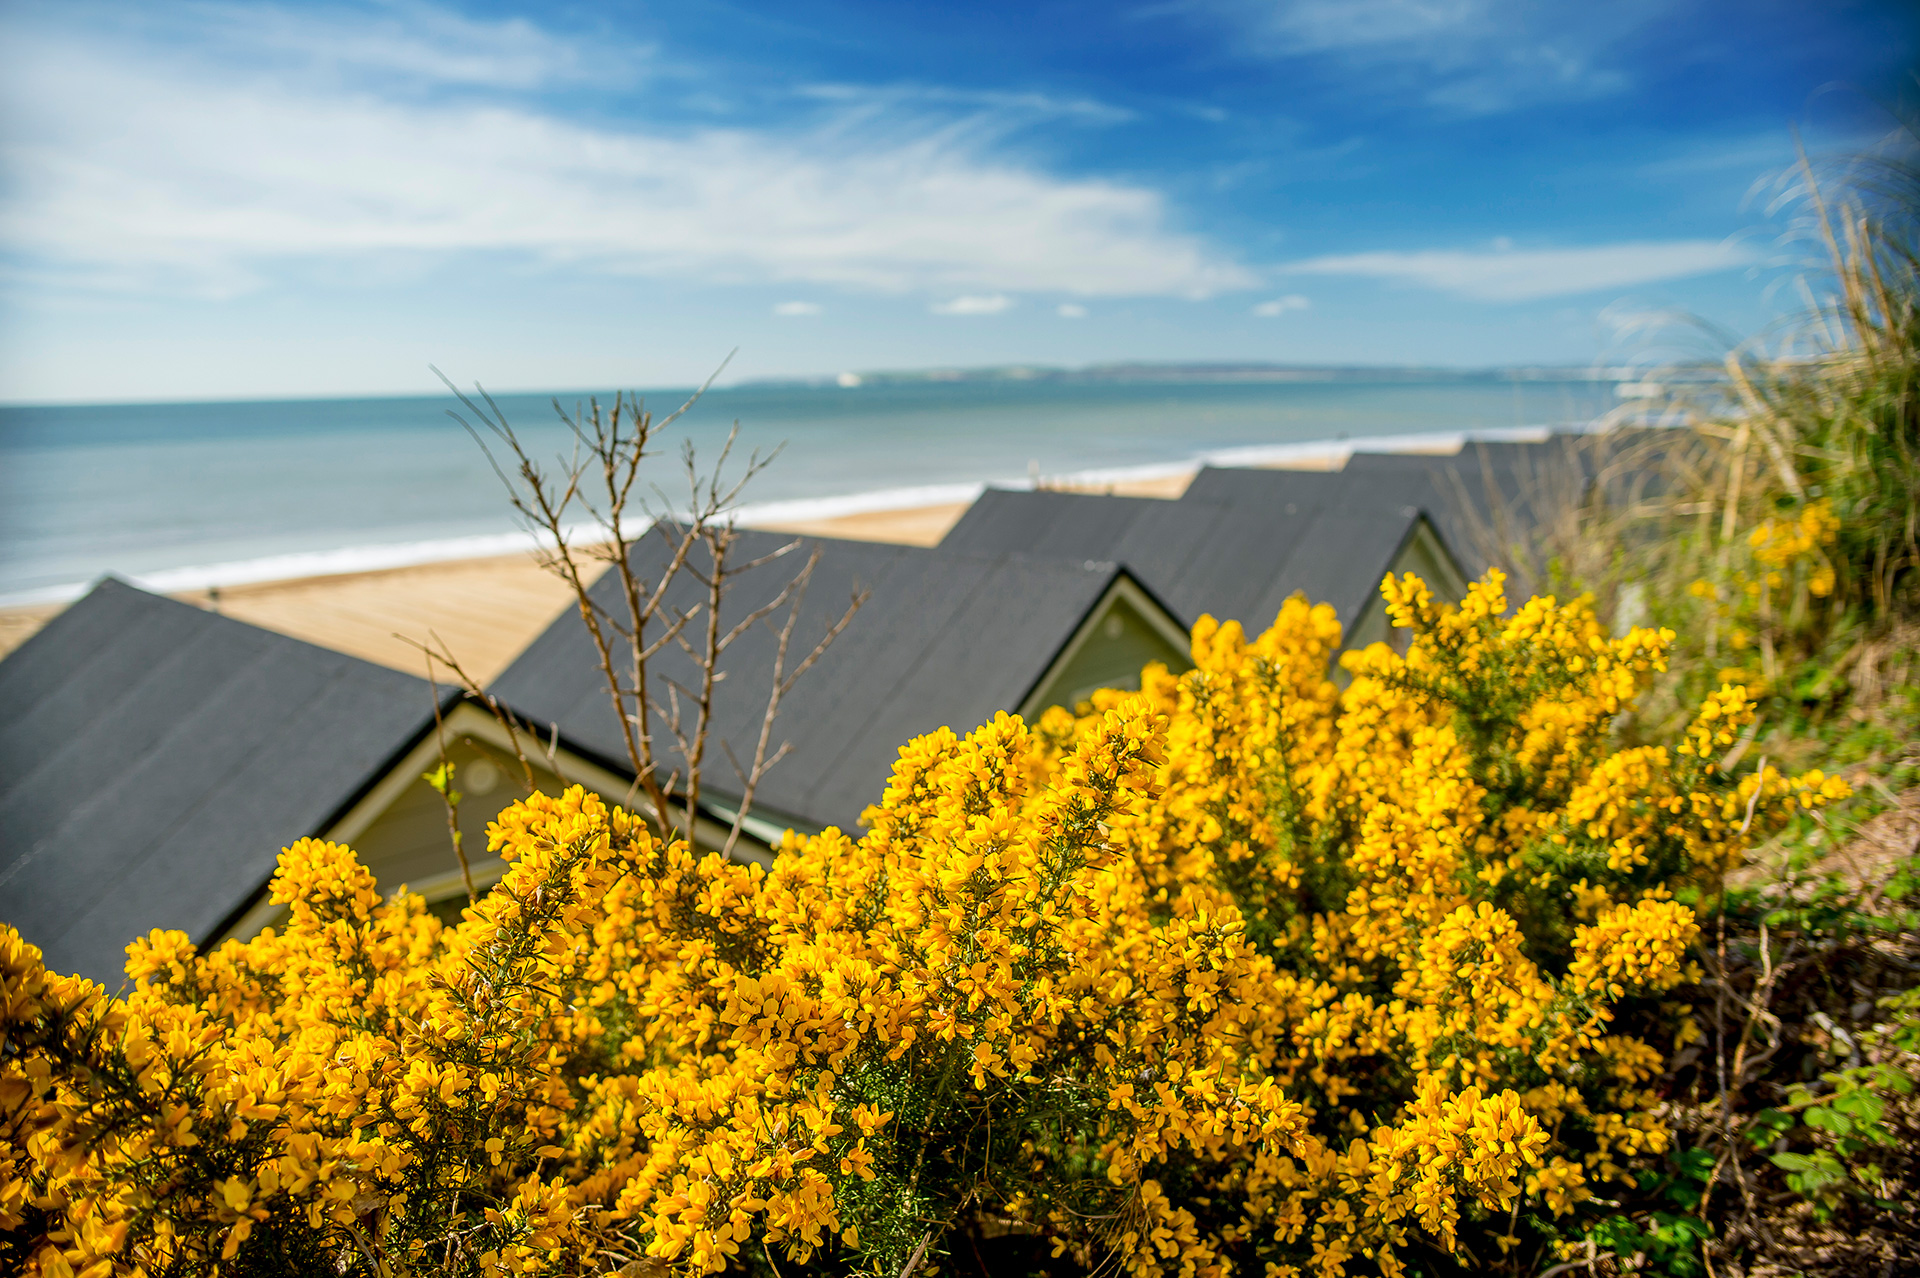 Close up shot of the yellow gorse bush behind the lodges